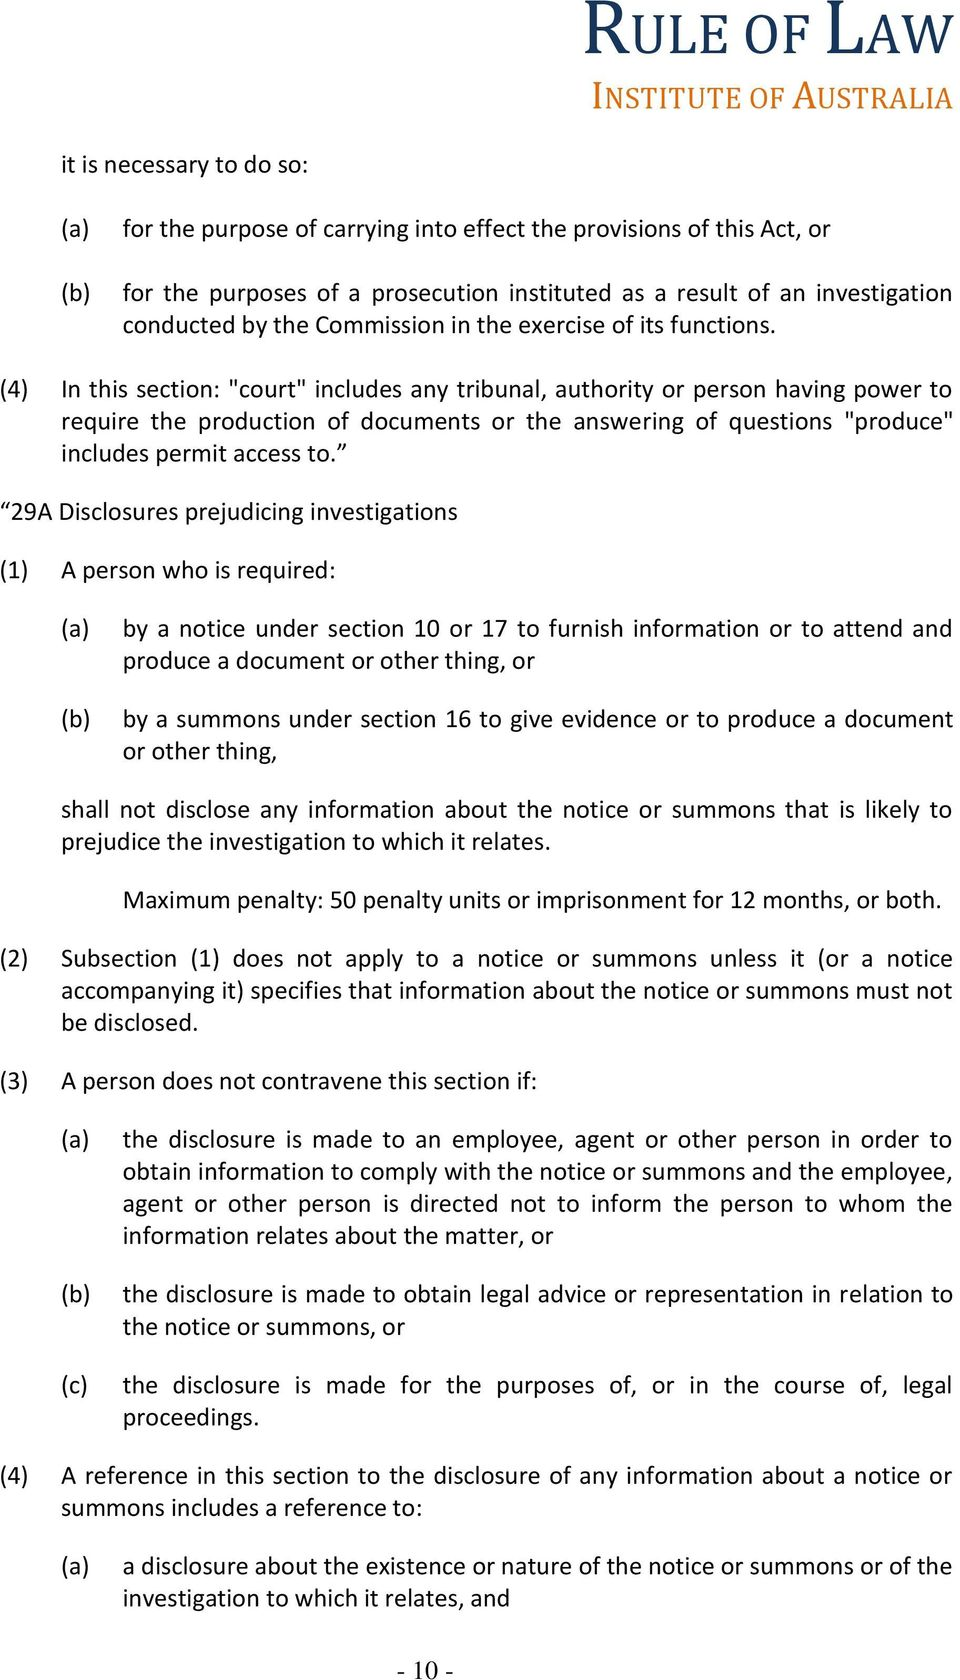 "(4) In this section: ""court"" includes any tribunal, authority or person having power to require the production of documents or the answering of questions ""produce"" includes permit access to."